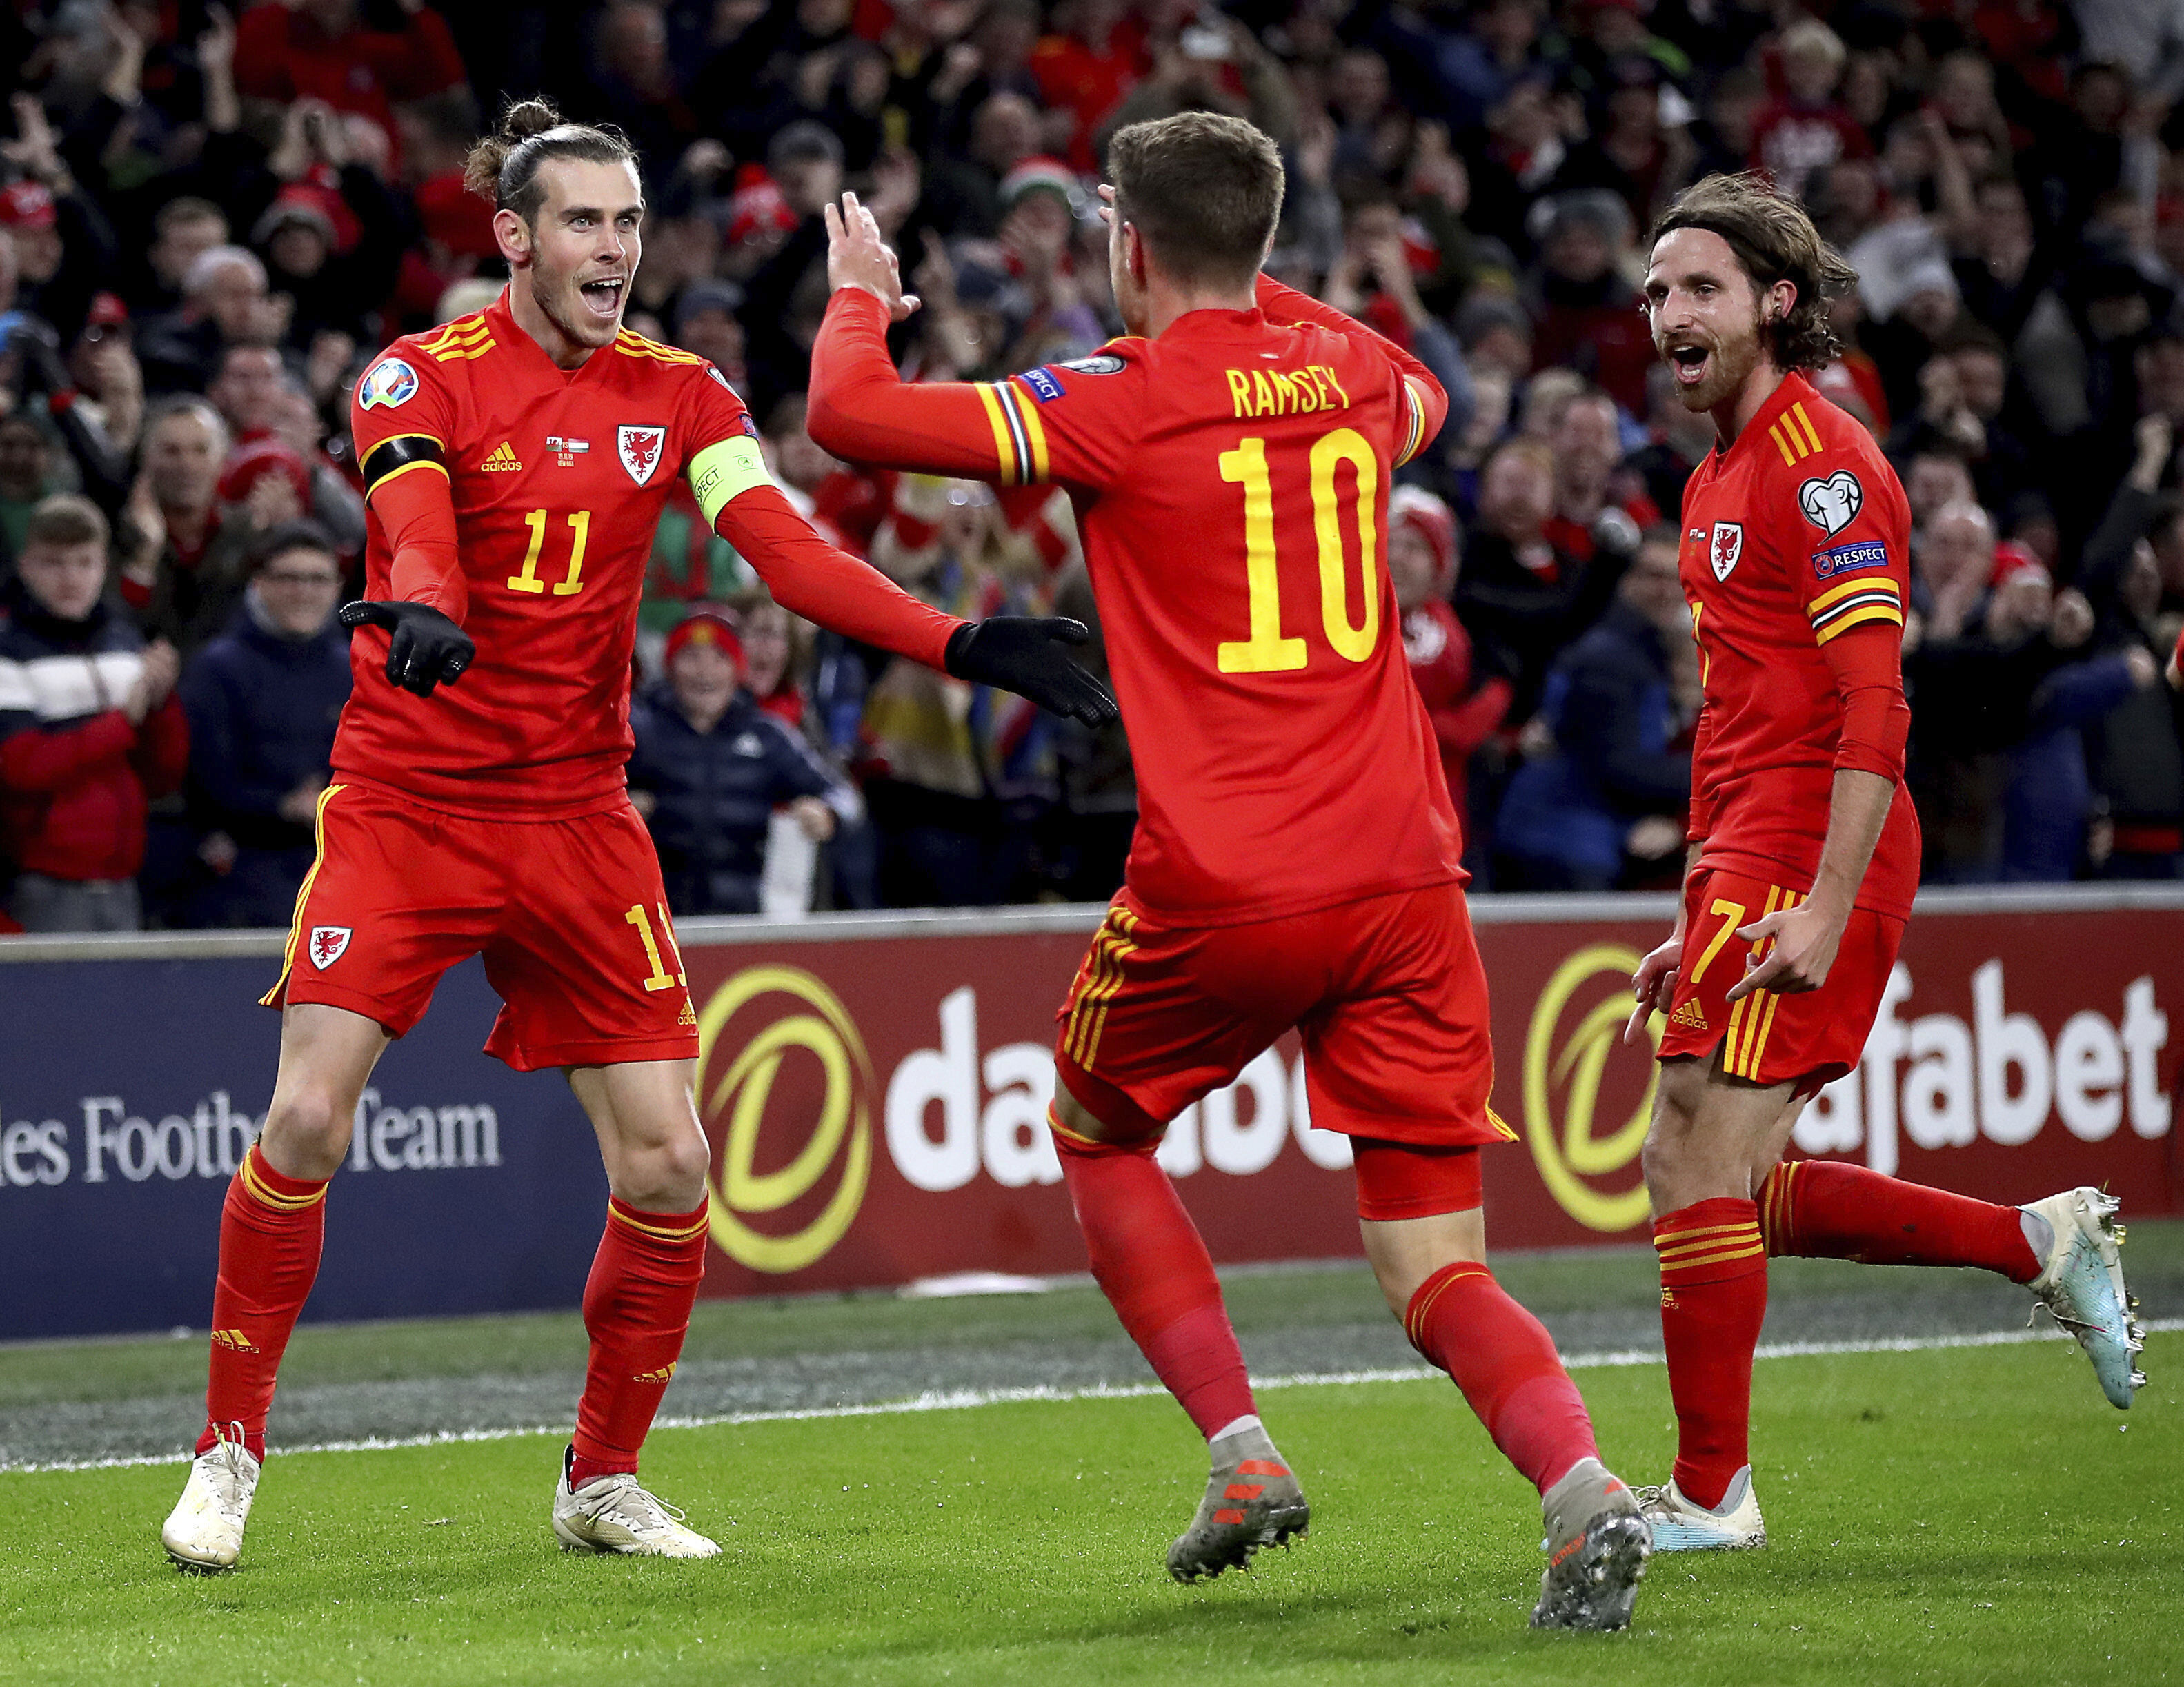 Calendrier De Match Euro 2020.Bale In Madrid Jibe After Helping Wales Reach Euro 2020 Wvns